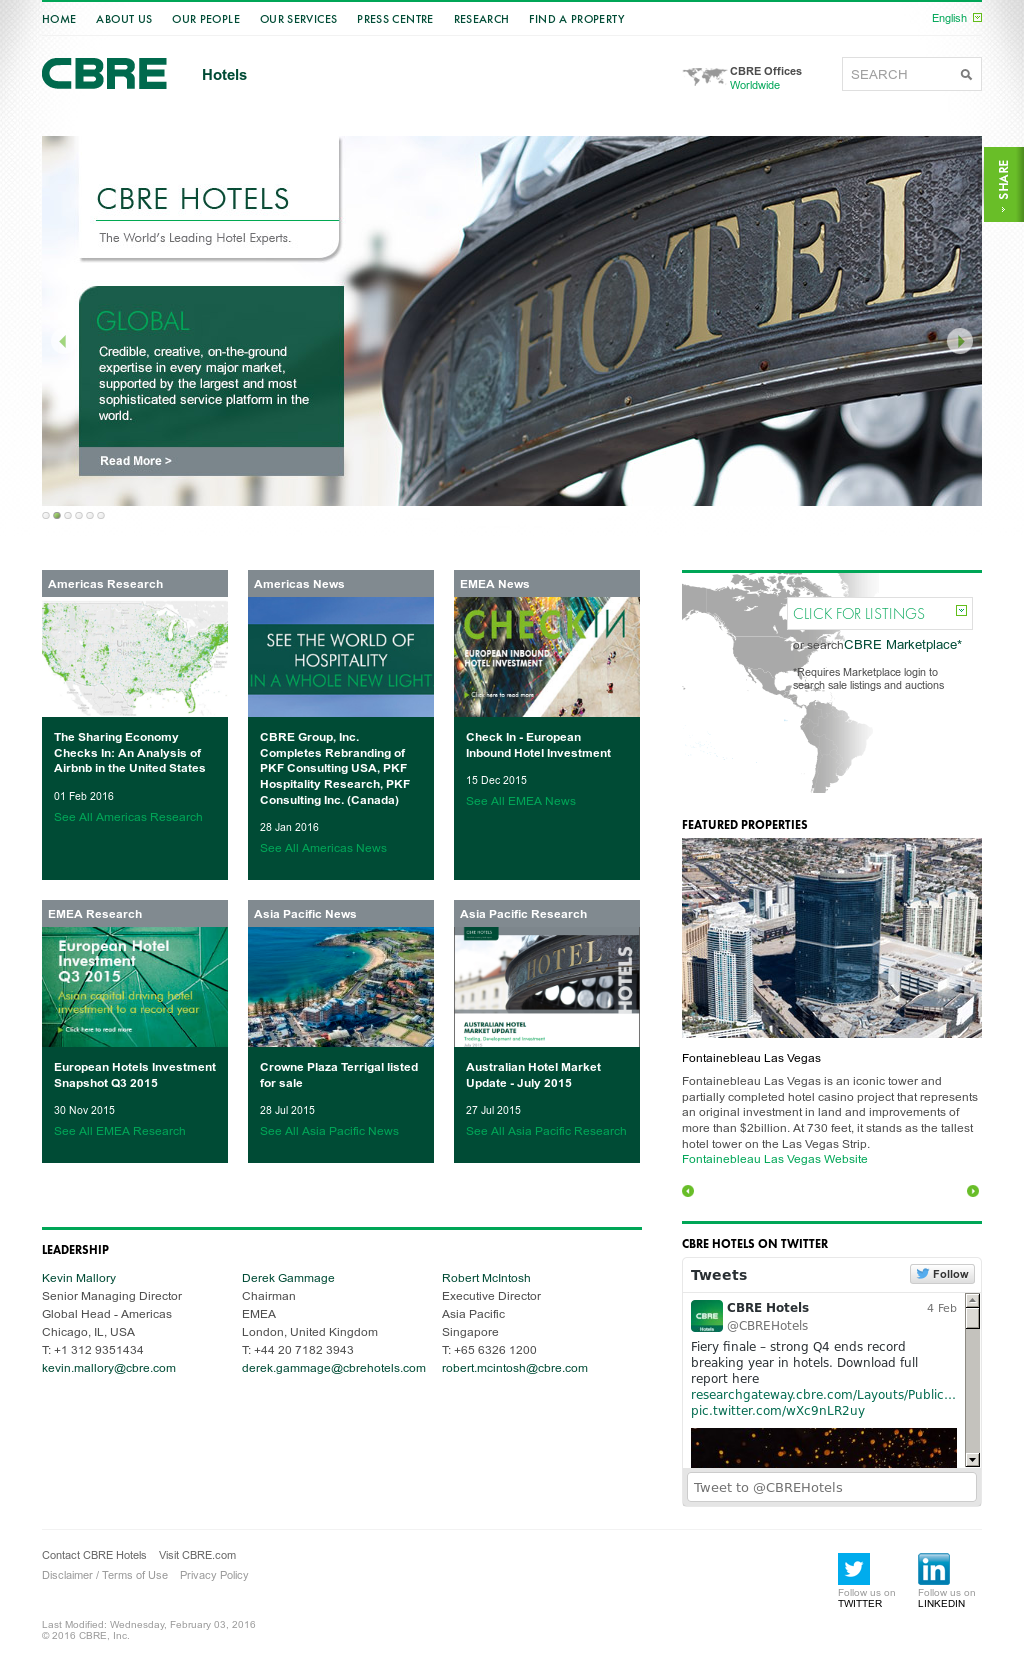 CBRE Hotels Competitors, Revenue and Employees - Owler Company Profile